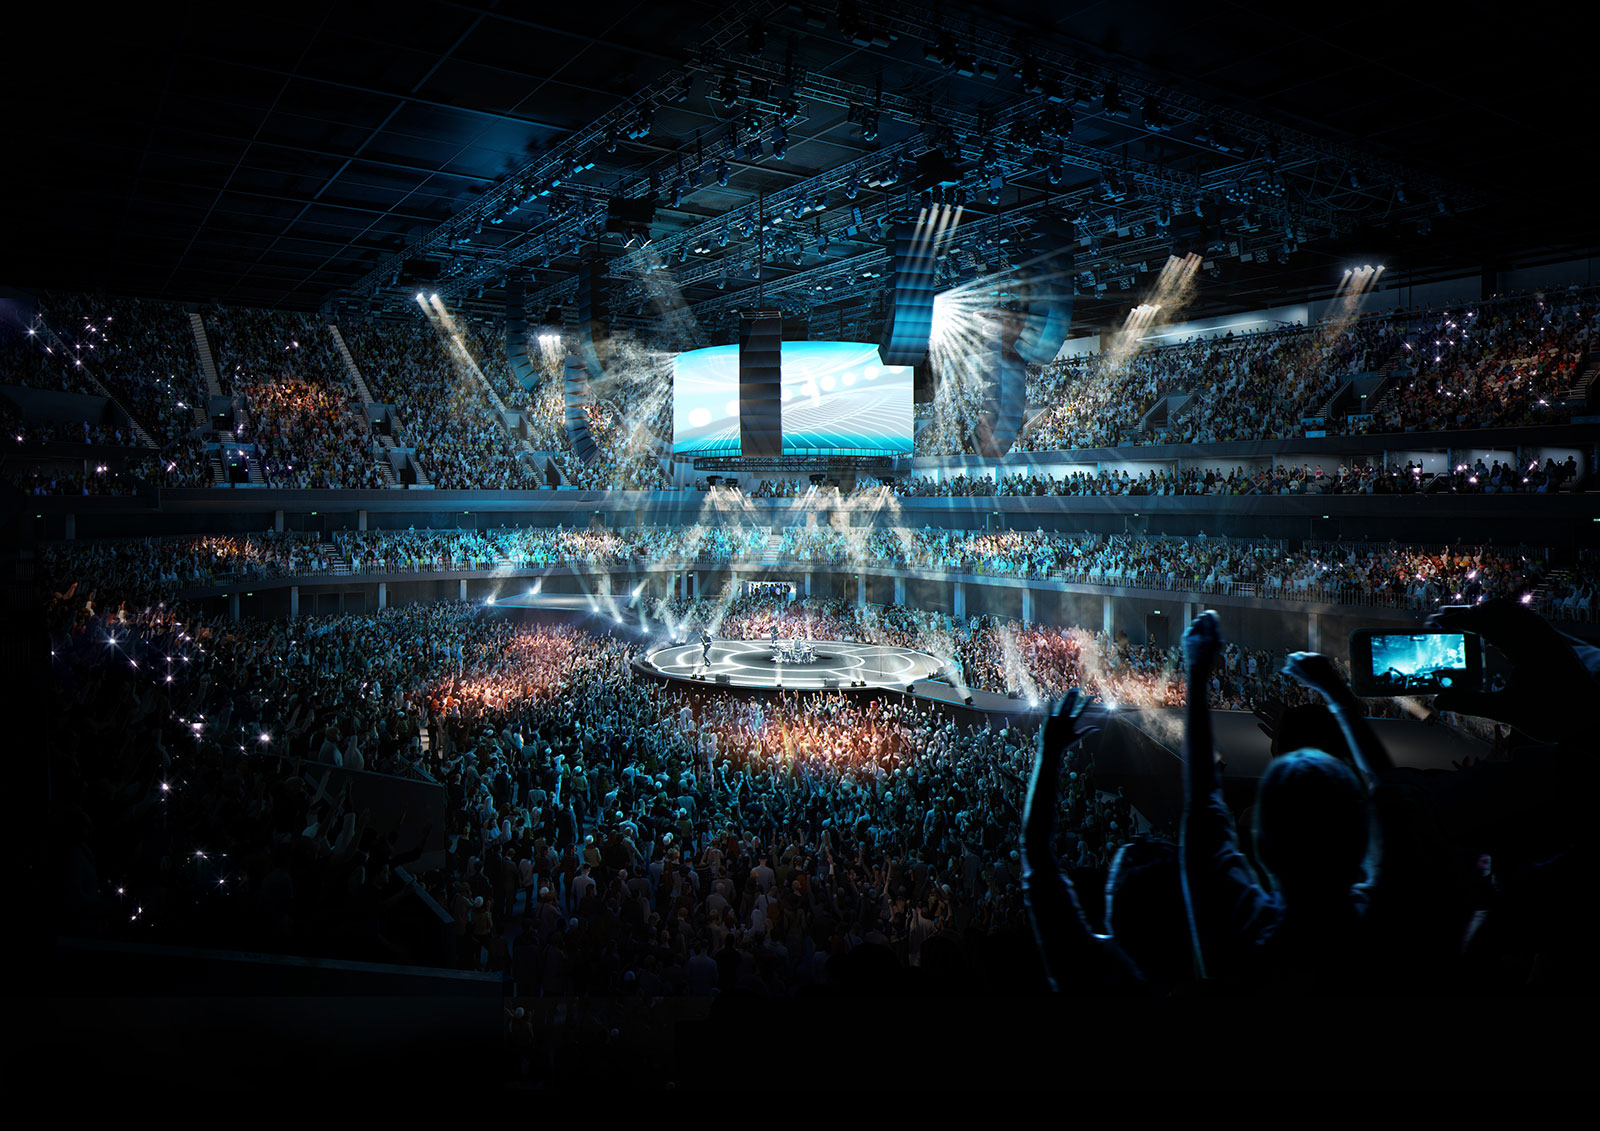 Laudation working with Oak View Group for 1st UK Arena